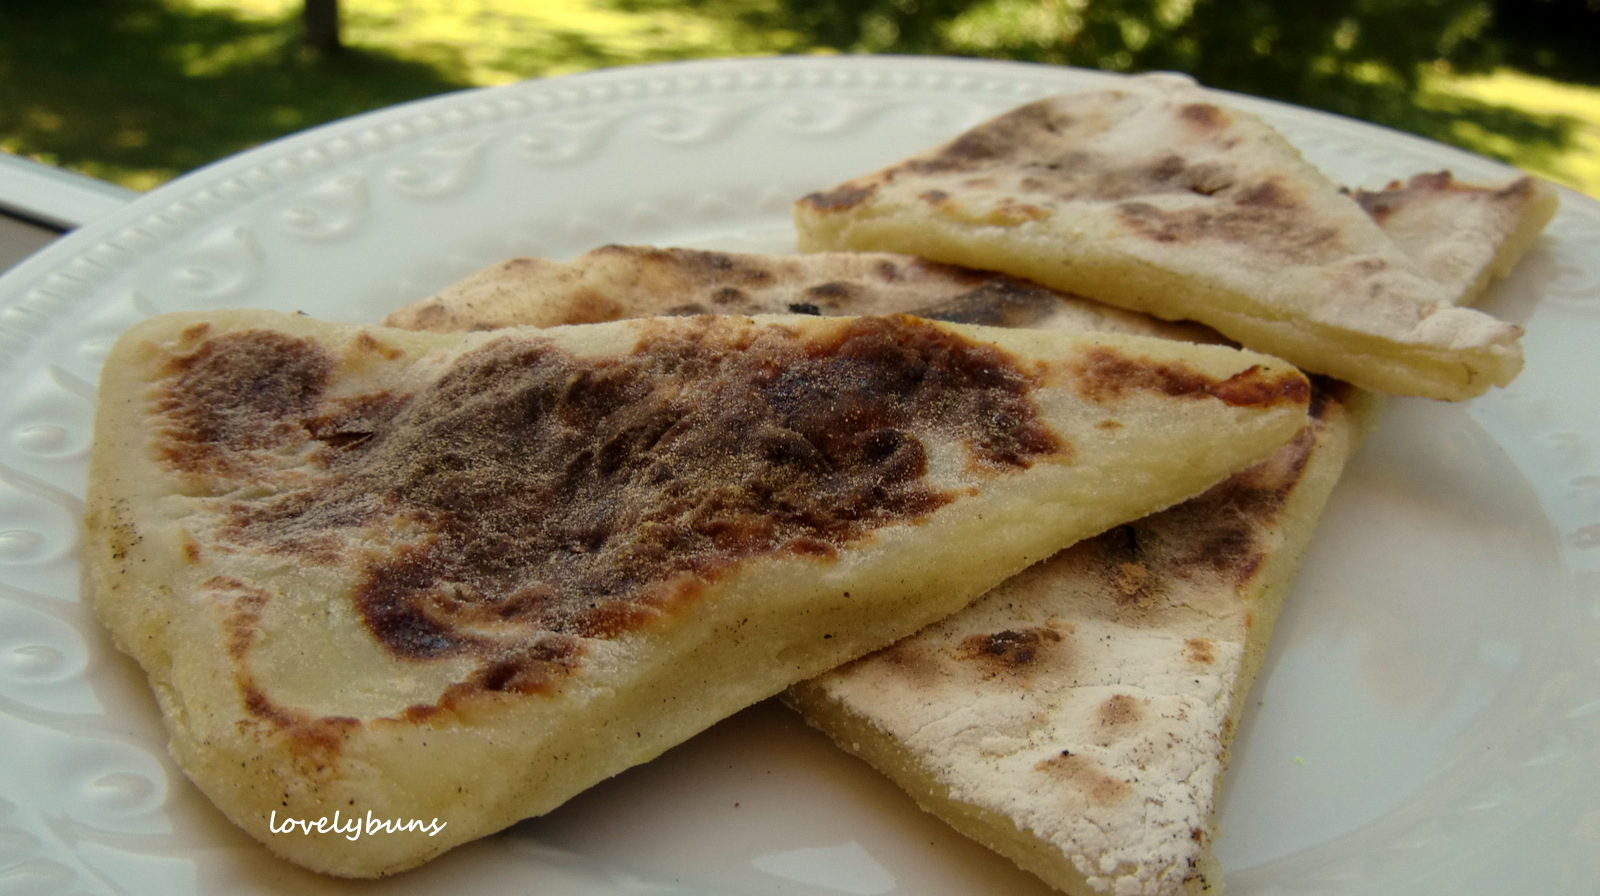 Tattie scones can be enjoyed on their own with a topping such as ...